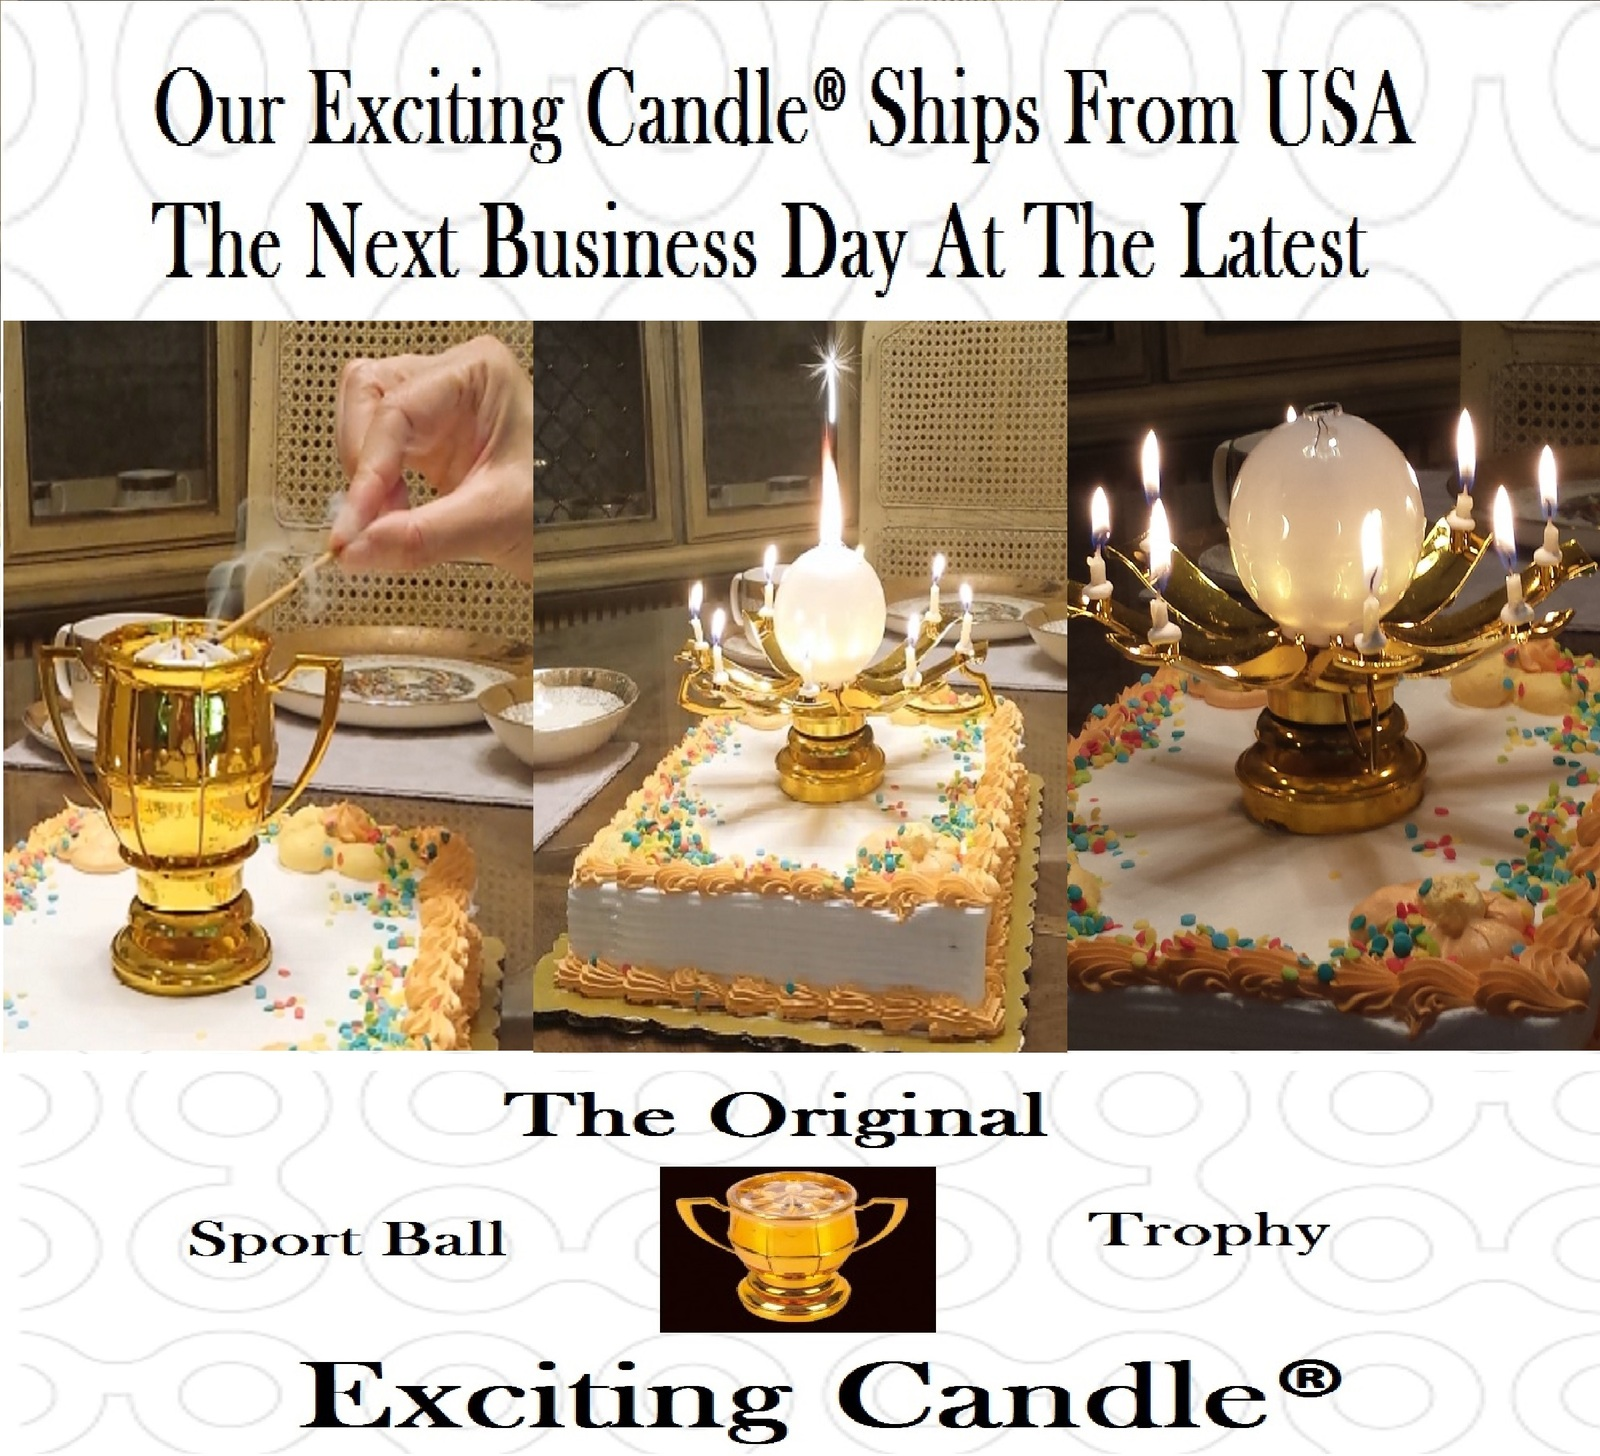 1 Golden Lotus + 1 Baseball Trophy + 1 Golf Trophy Birthday EXCITING CANDLE